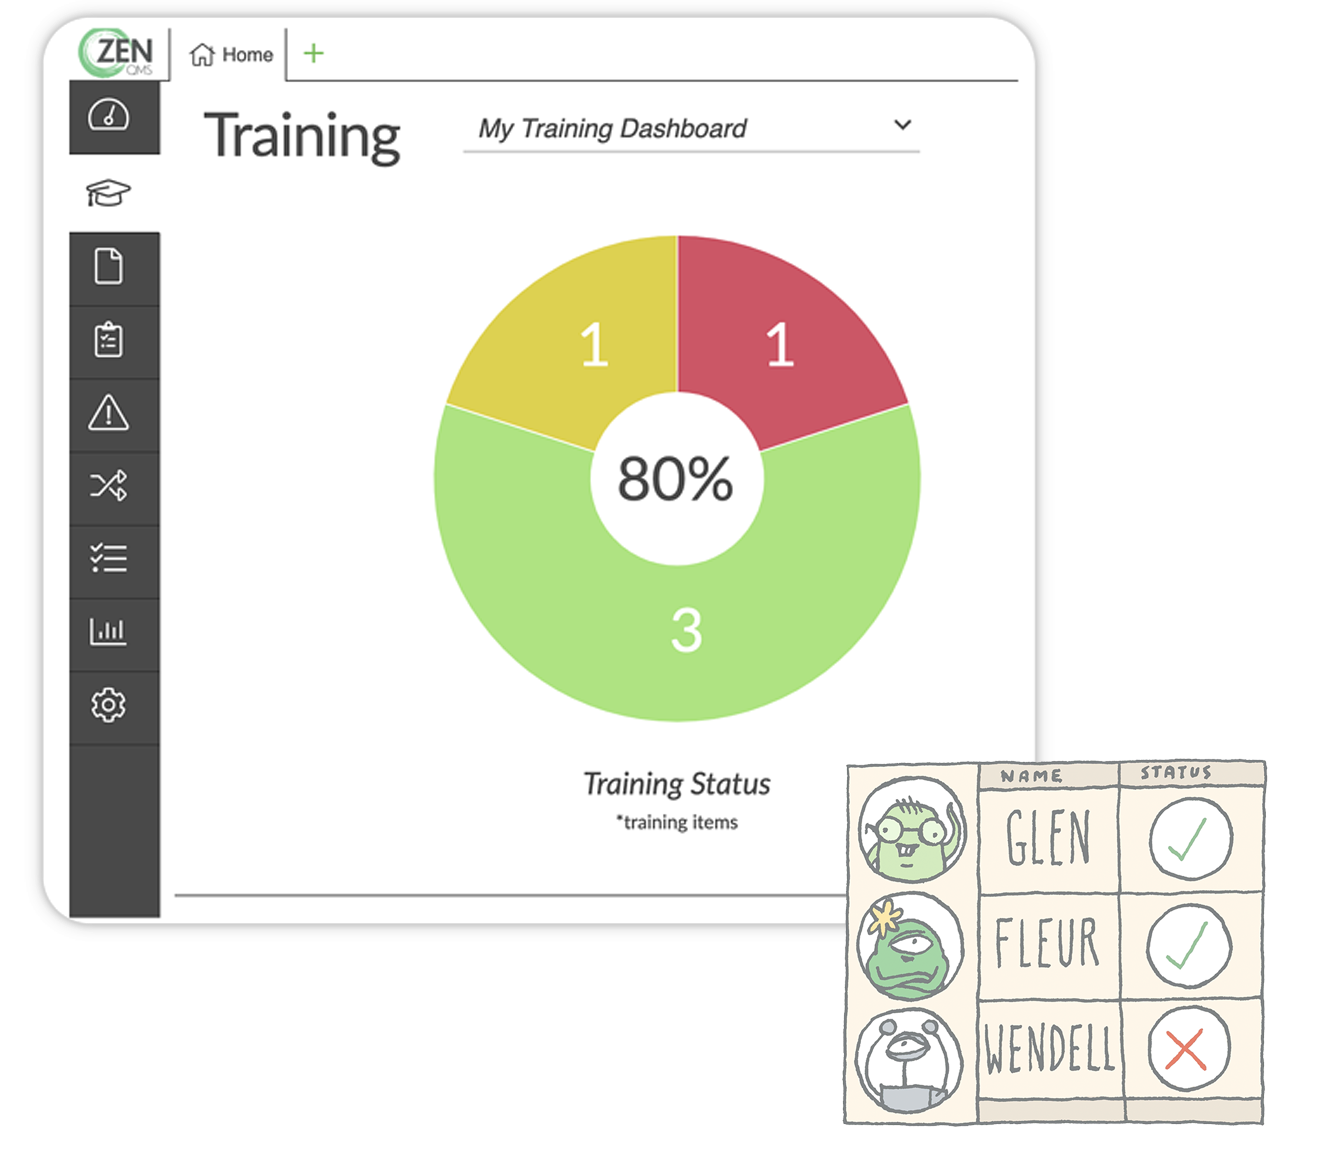 A screenshot of the Training module and an illustration of a training matrix of Zenners, showing that Glen and Fleur are complaint, while Wendell is not. This illustrates how ZenQMS gives instant visibility into training.